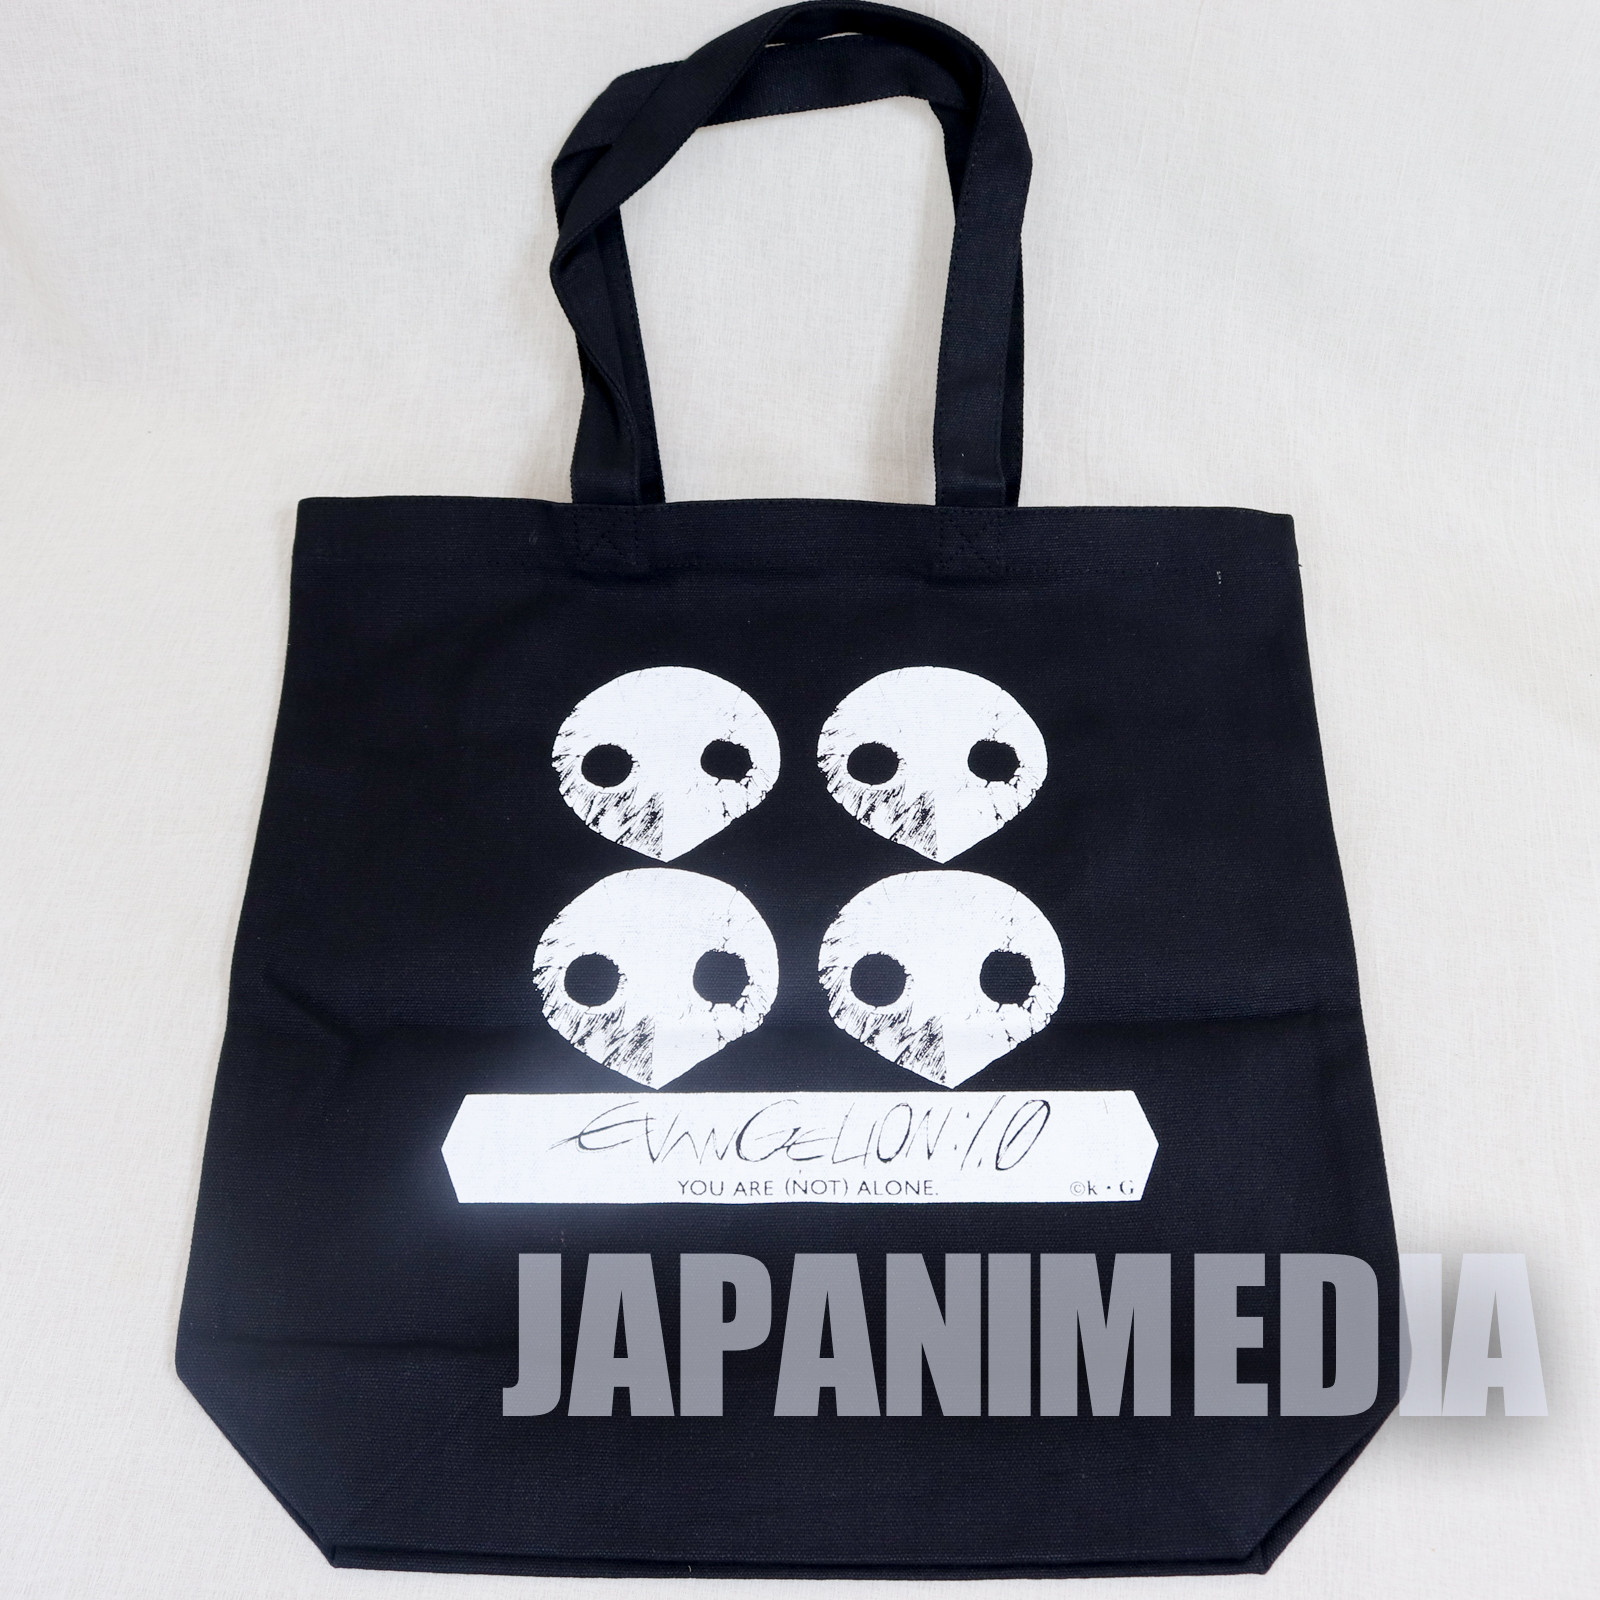 Evangelion Angel Shito Sachiel Tote Bag 14 x 14 inch JAPAN ANIMATE